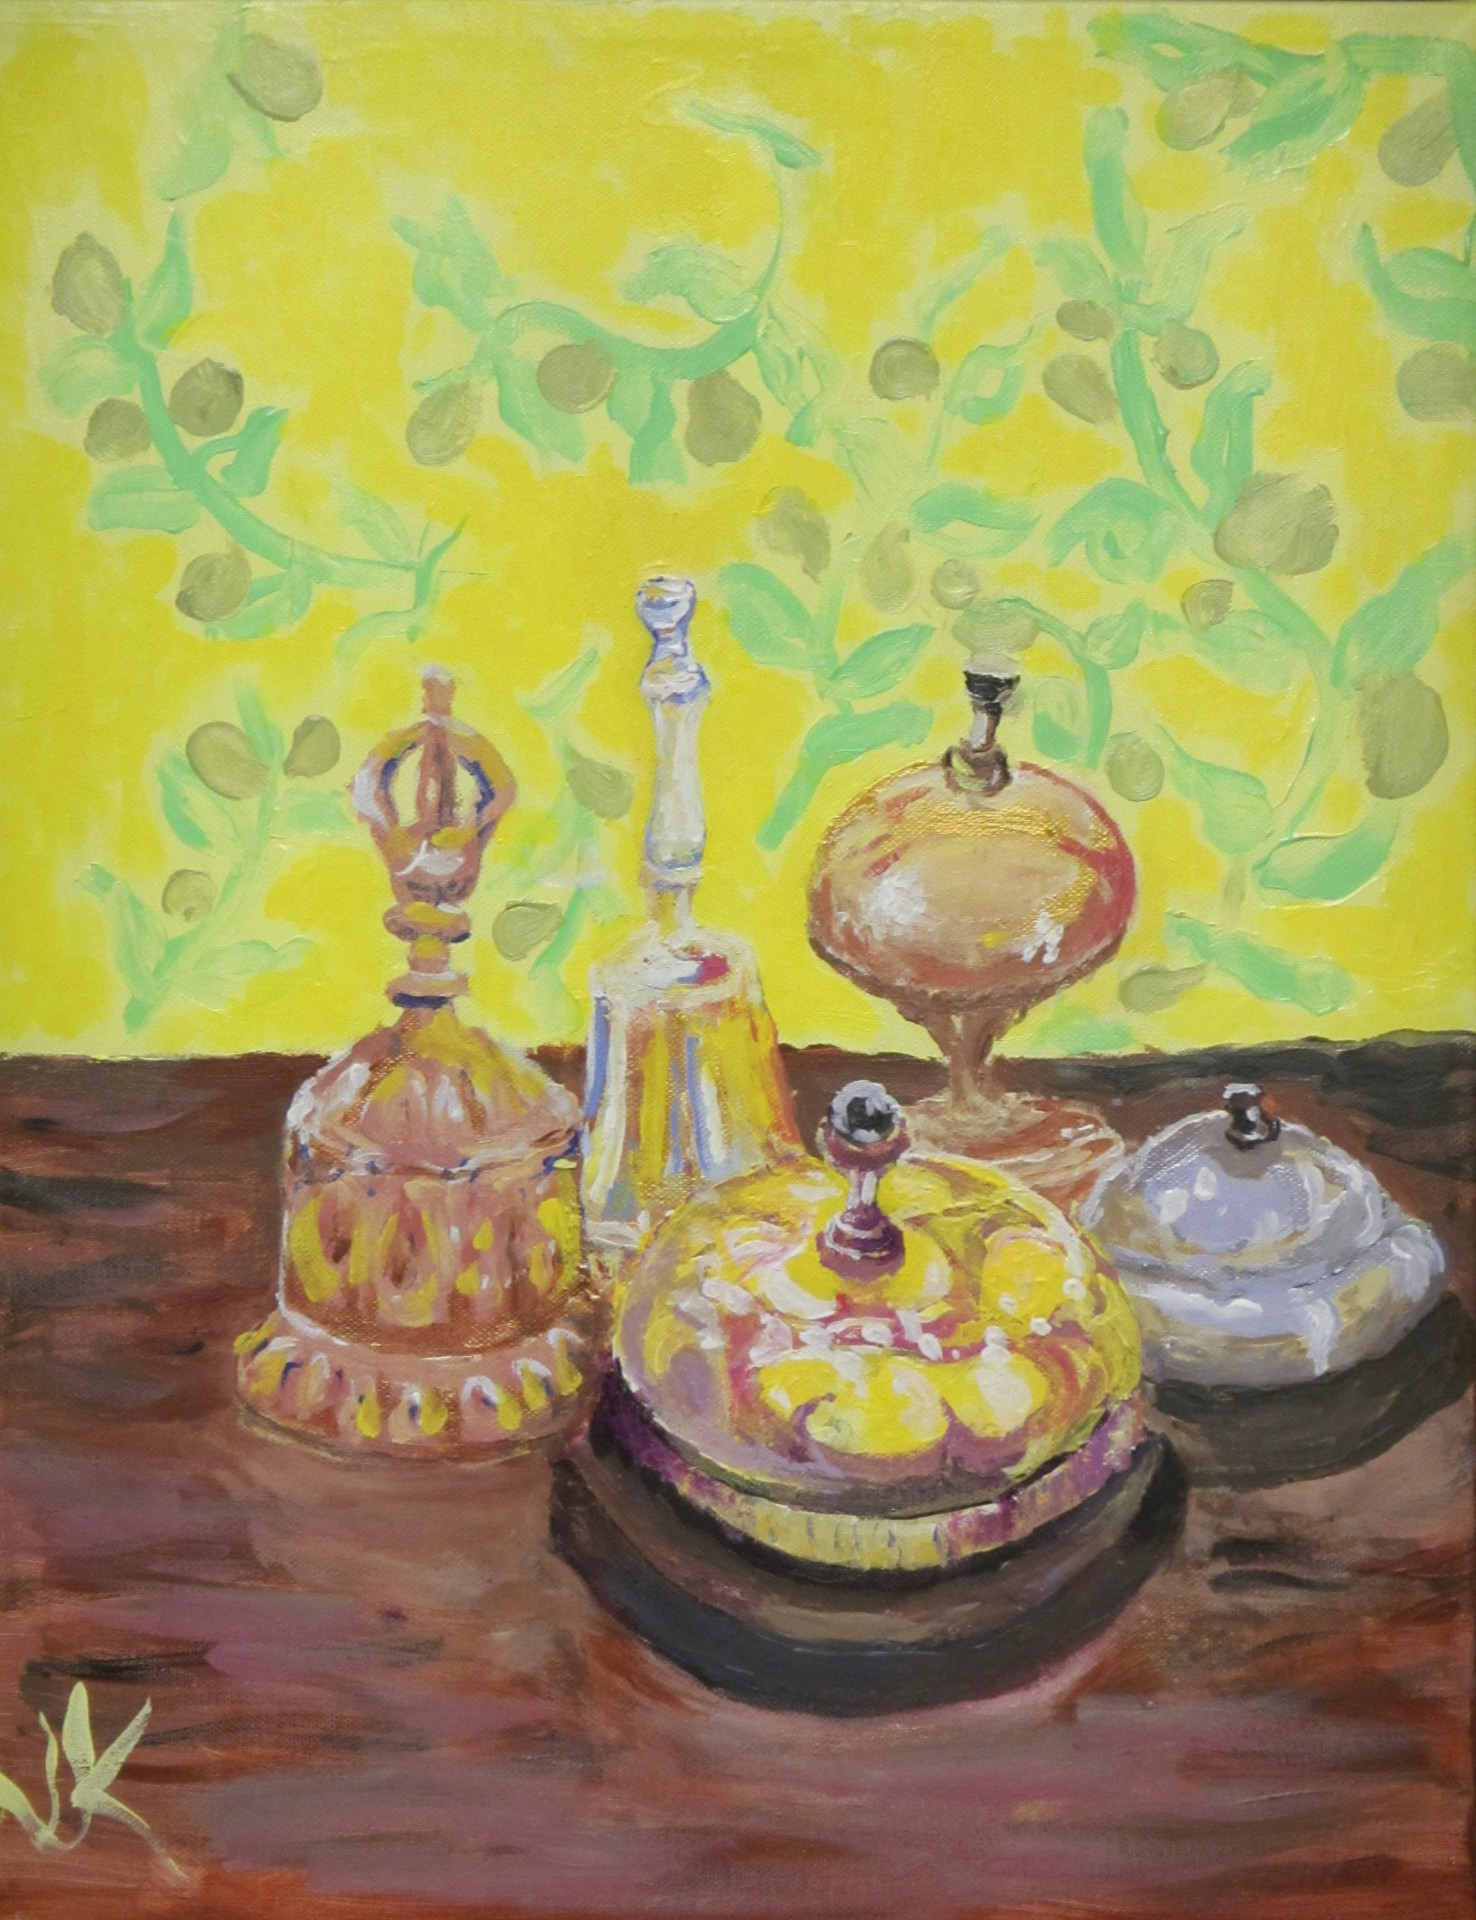 Acrylic painting on canvas of a still life with different hand bells.